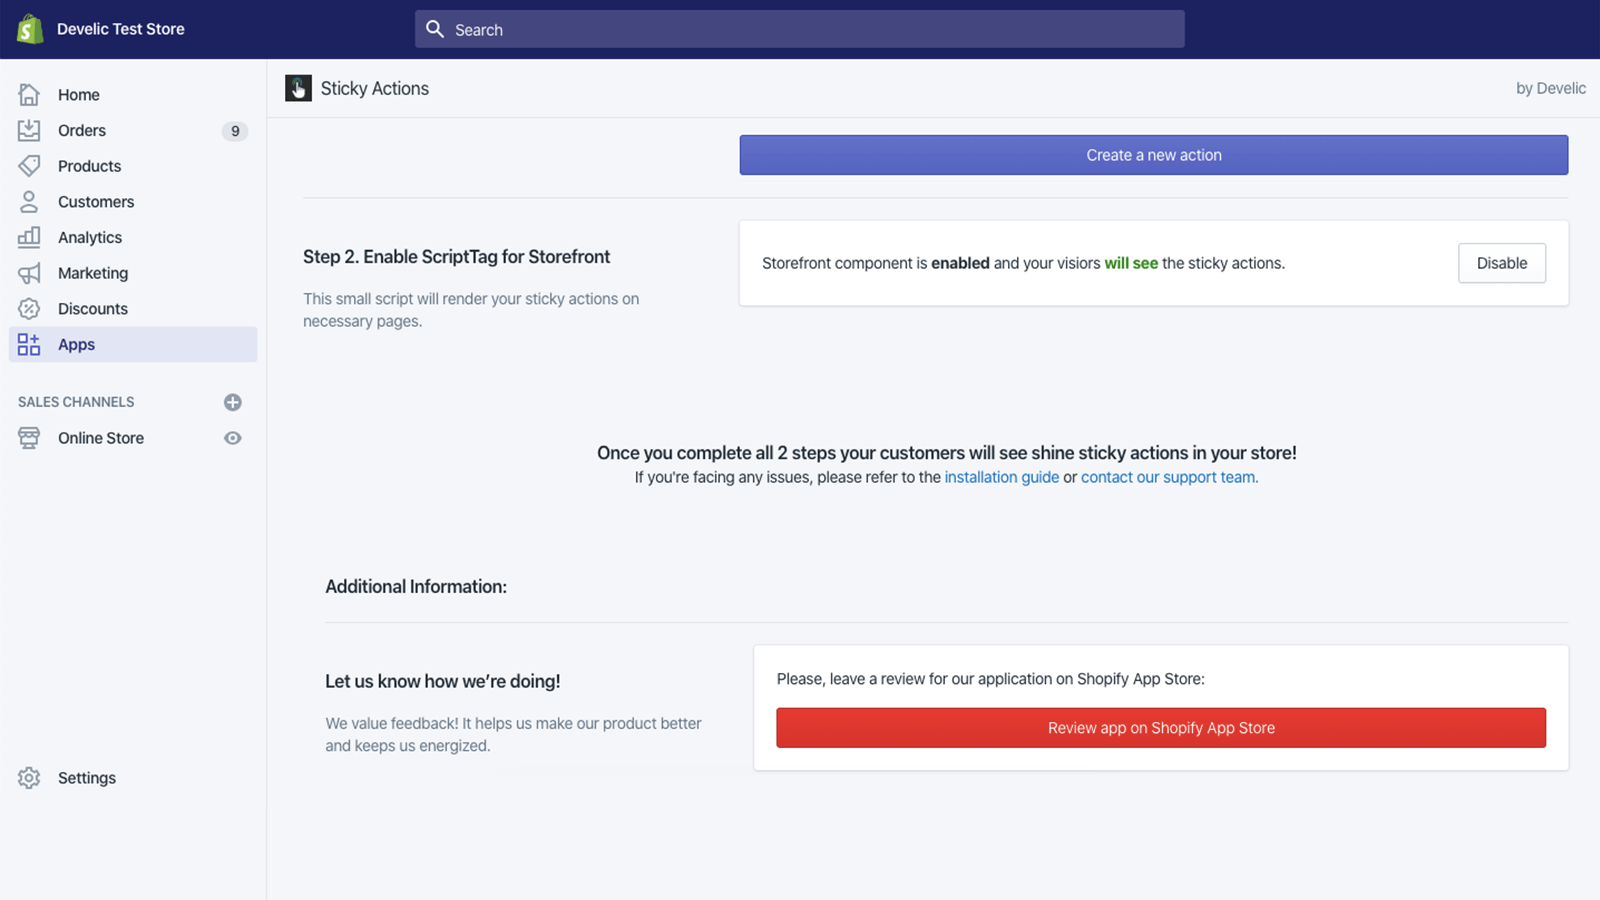 Sticky Actions, Admin Dashboard 2